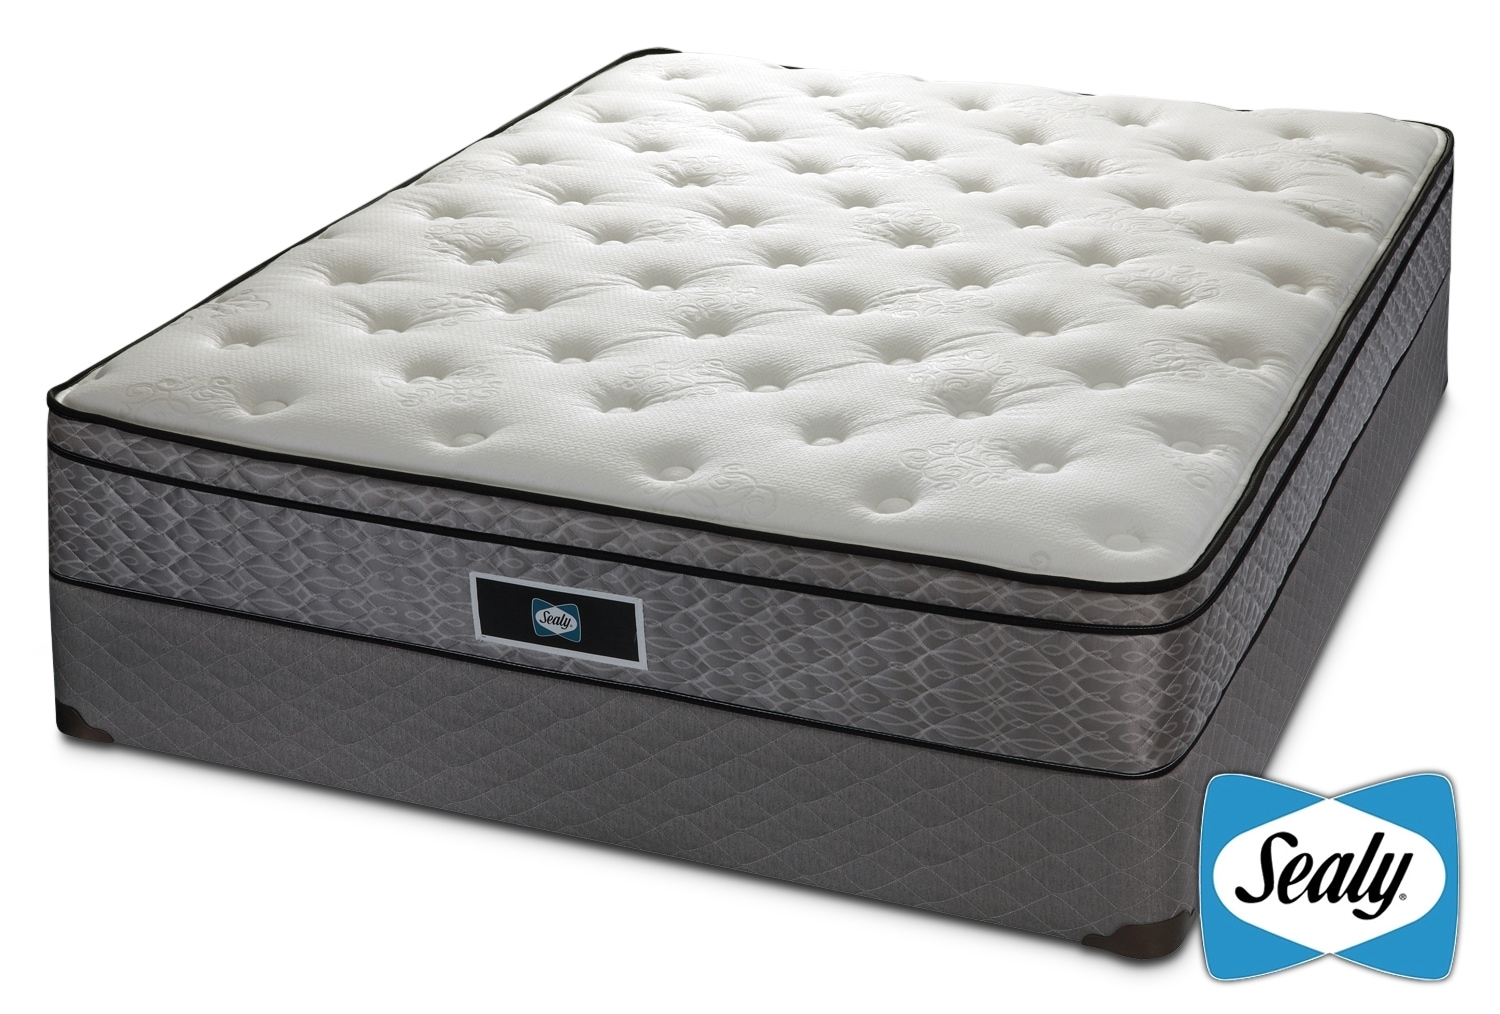 Split queen mattress sale bed mattress sale Mattress set sale queen